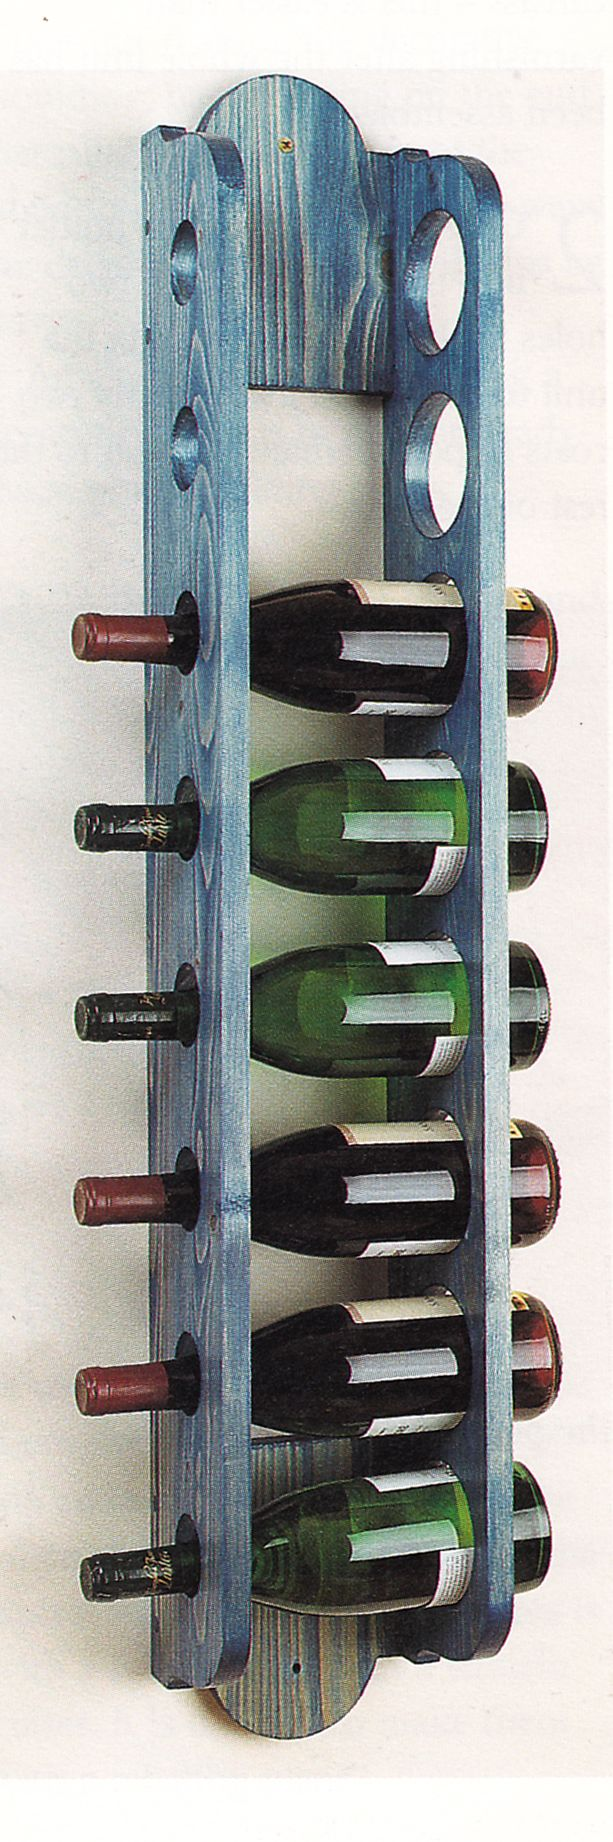 Best 25+ Pallet wine racks ideas on Pinterest | Pallett wine rack ...